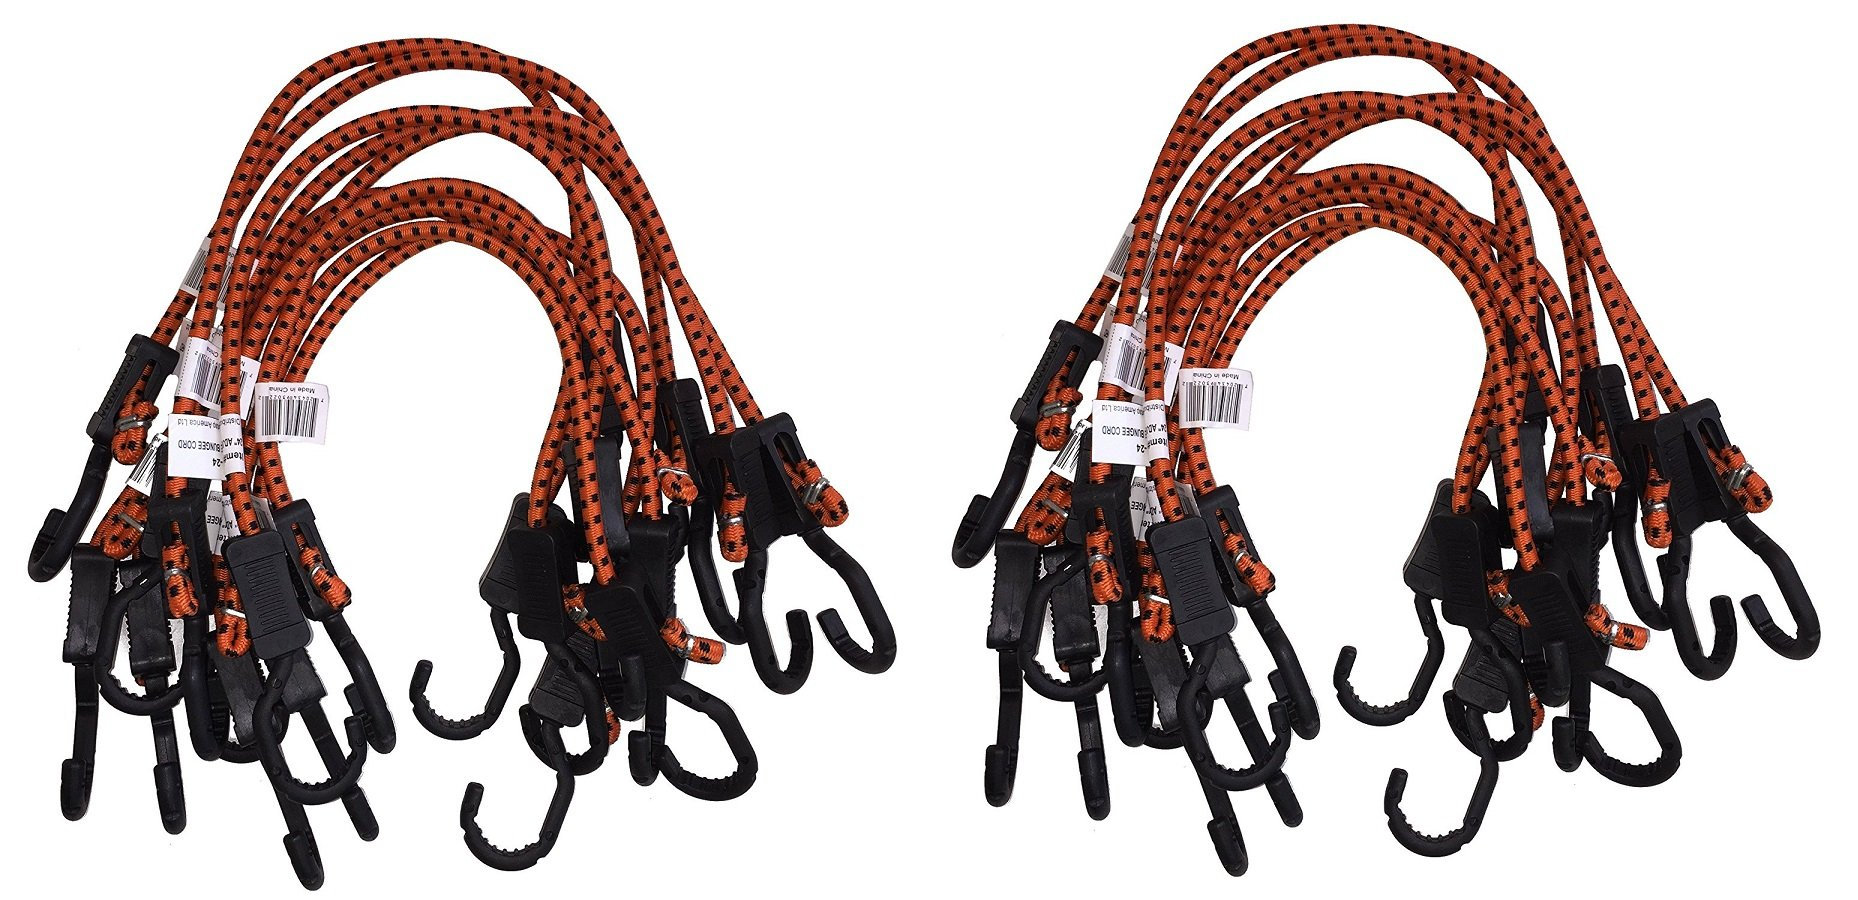 Kotap Adjustable 24-Inch Bungee Cords, 10-Piece, Item: MABC-24 (Pack of 2) by Kotap